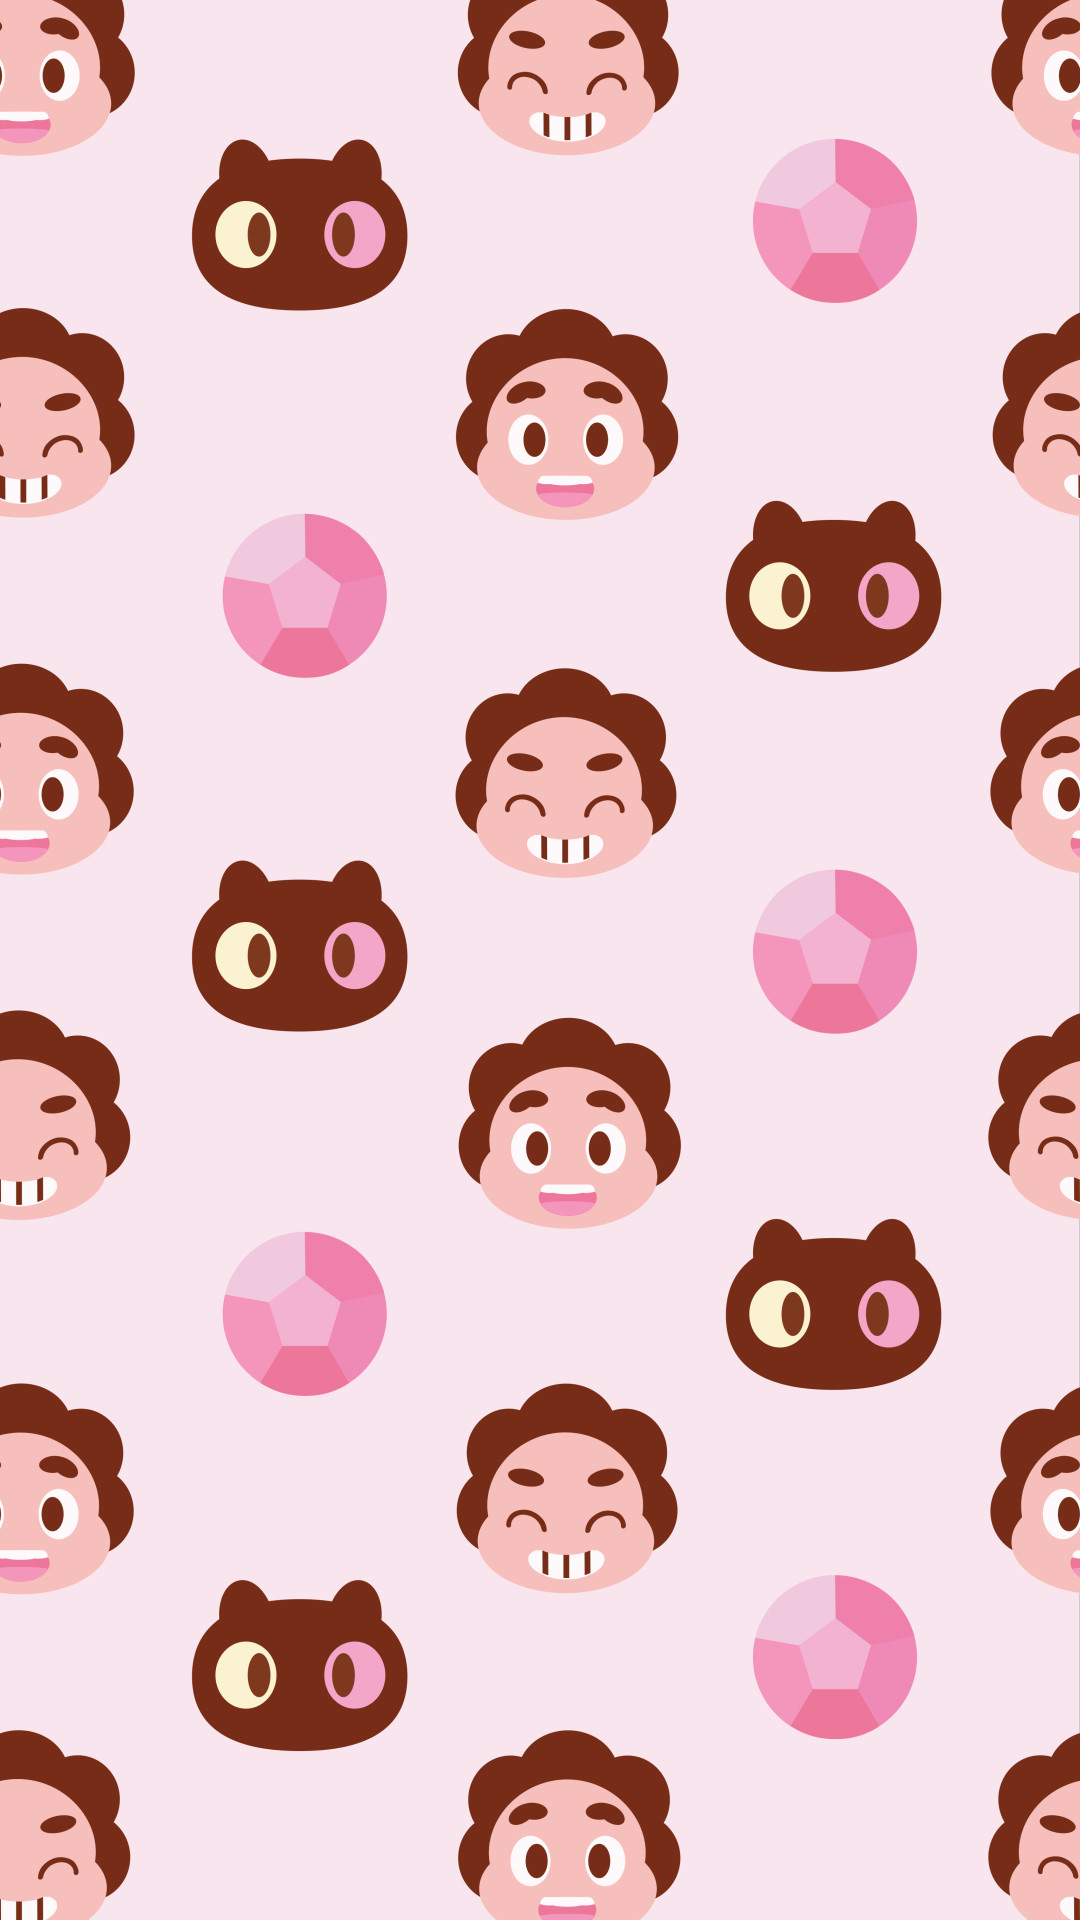 strawberry boy, steven wallpapers for your phone! you can get both.